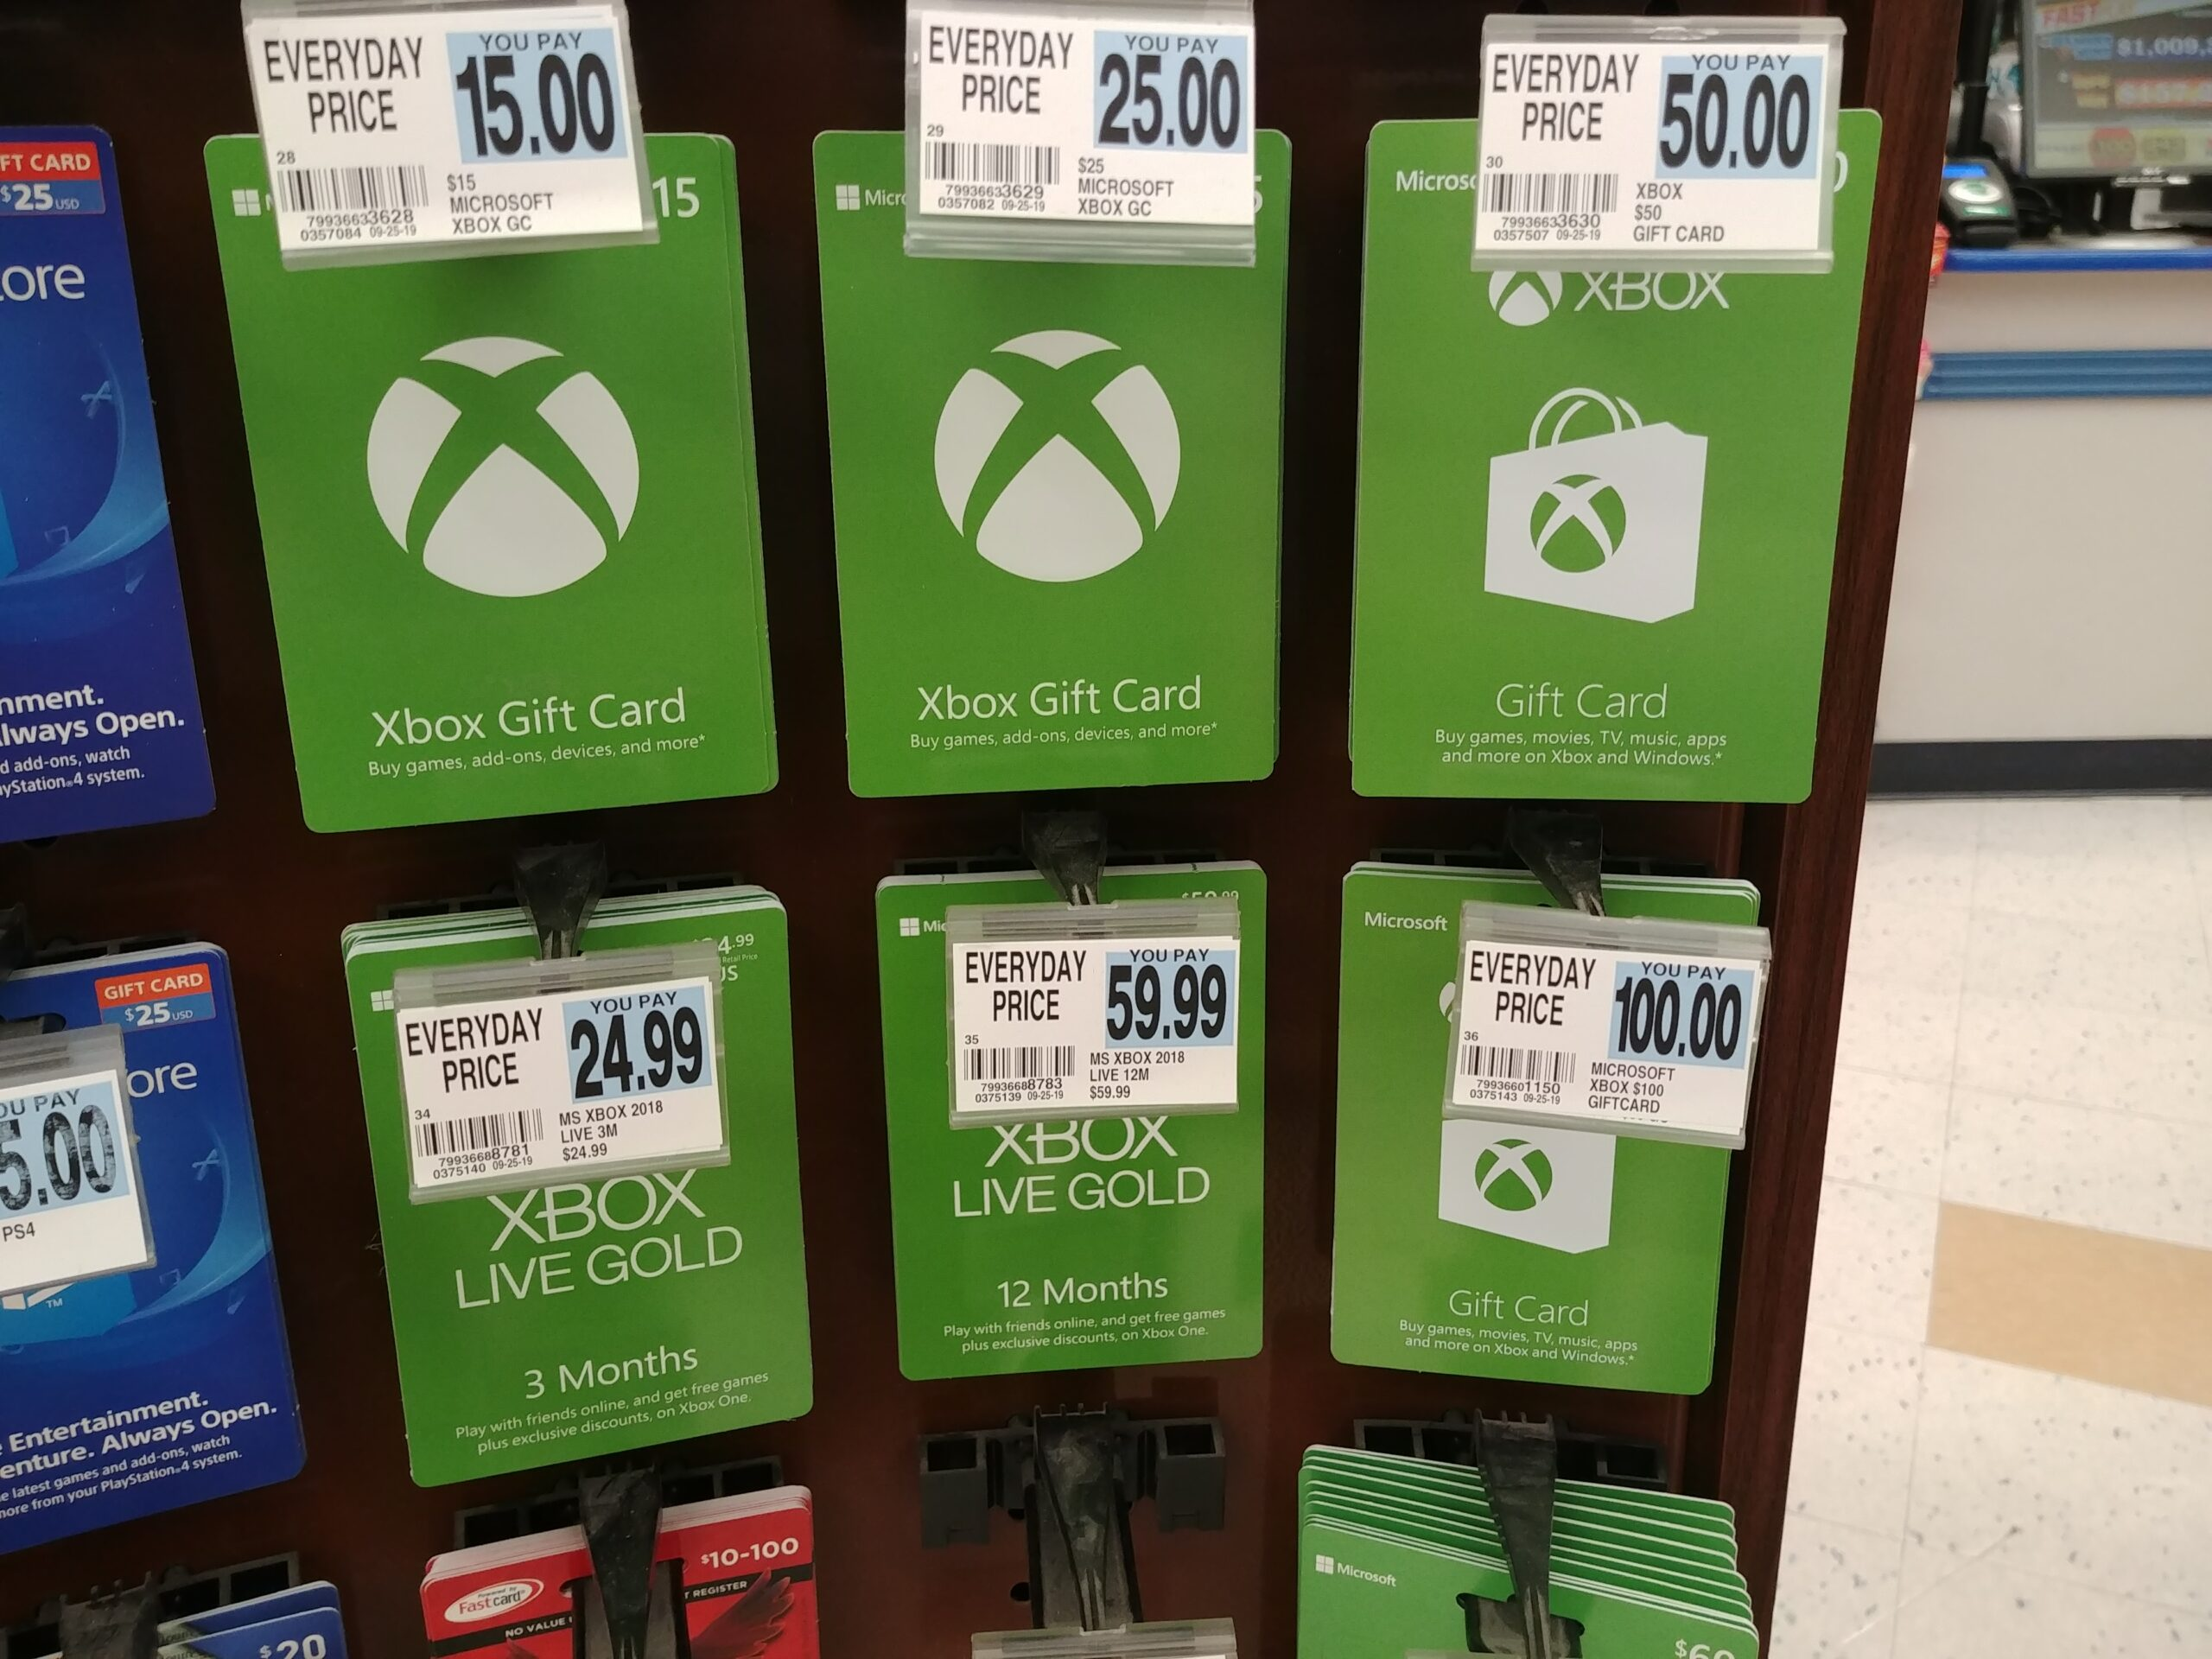 Xbox-gift-cards-at-rite-aid